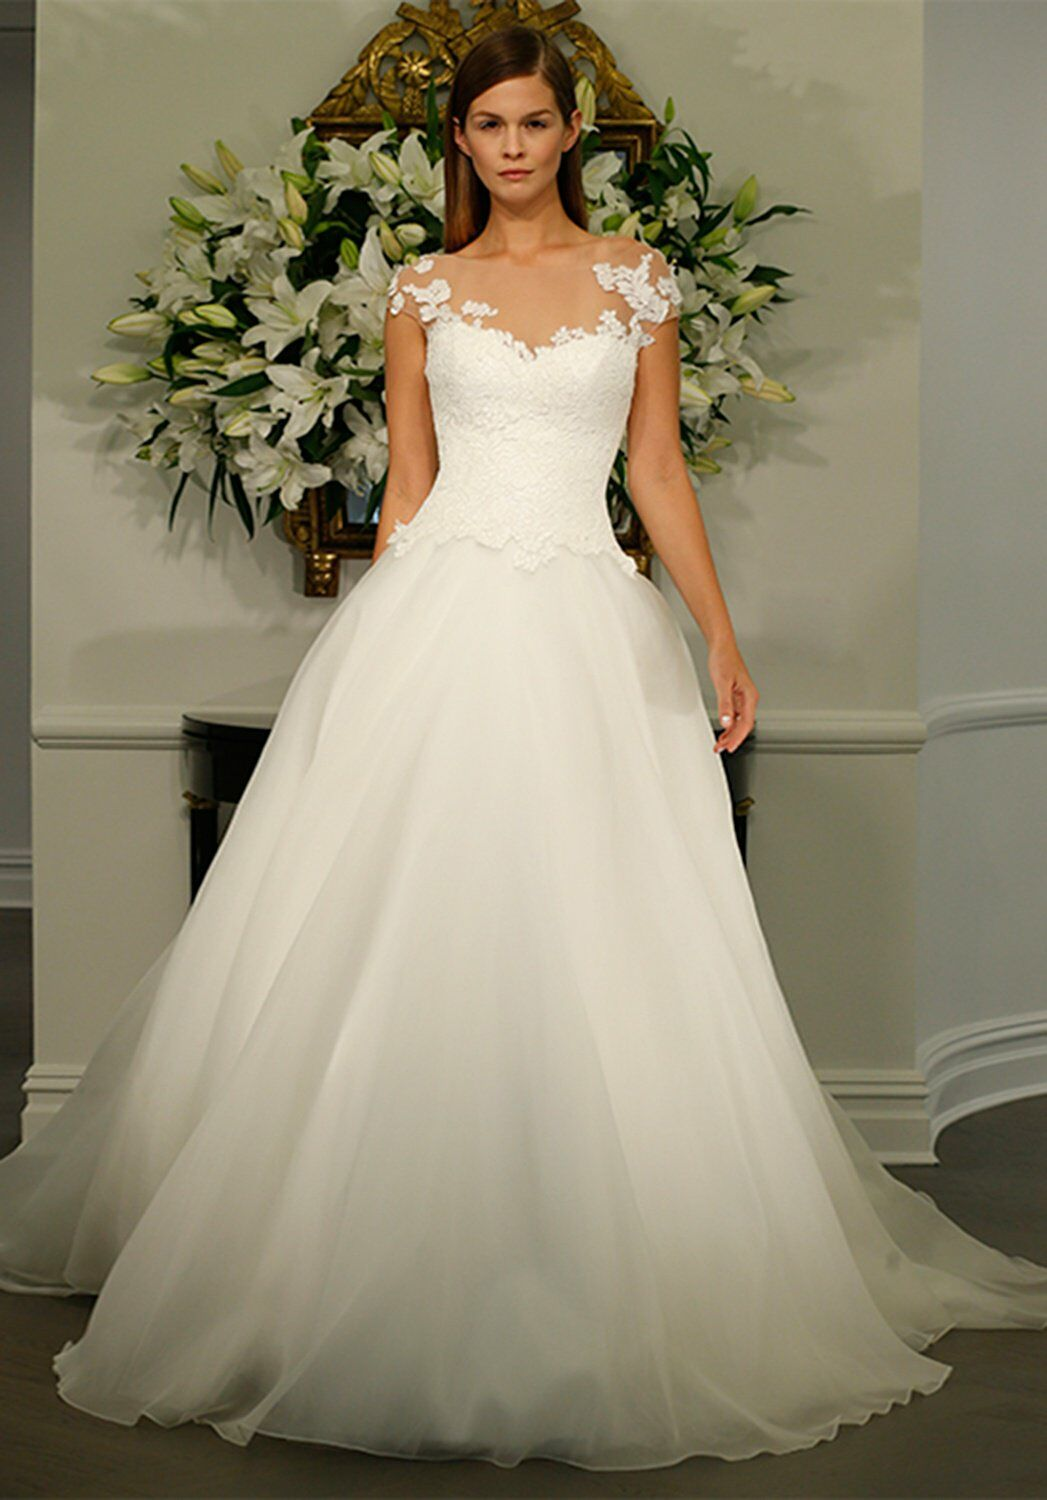 Legends Romona Keveza L5134 Wedding Dress - The Knot